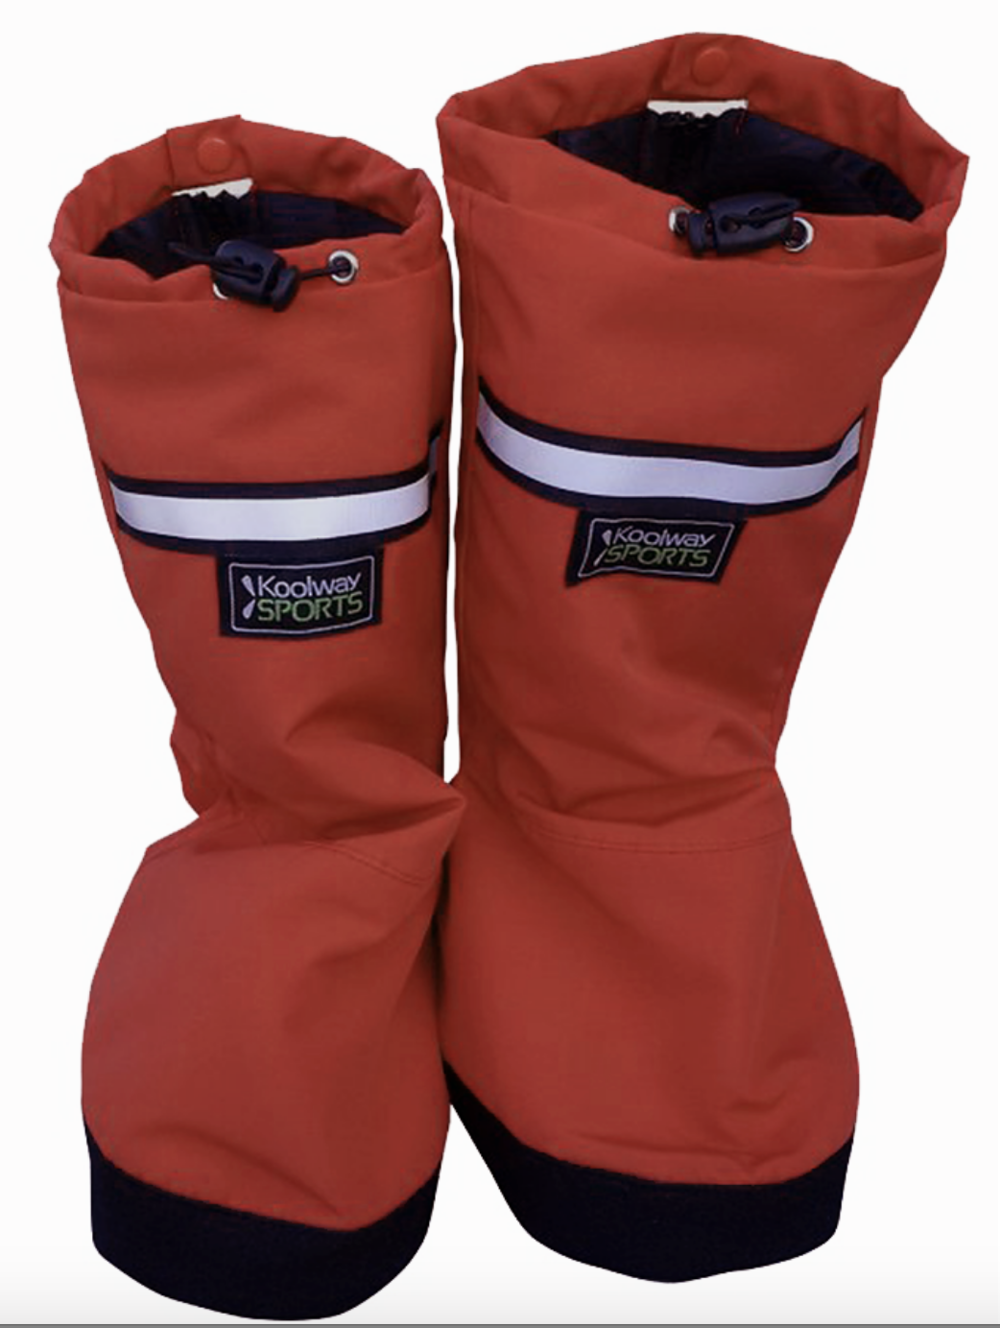 KOOLWAY     SPORTS KOOL BOOTS $180.00     I am a fan of the Koolway brand and the adaptive fashion they've design for almost two decades. The Kool Boot is designed for AFO users, zips in the back, and is machine washable.